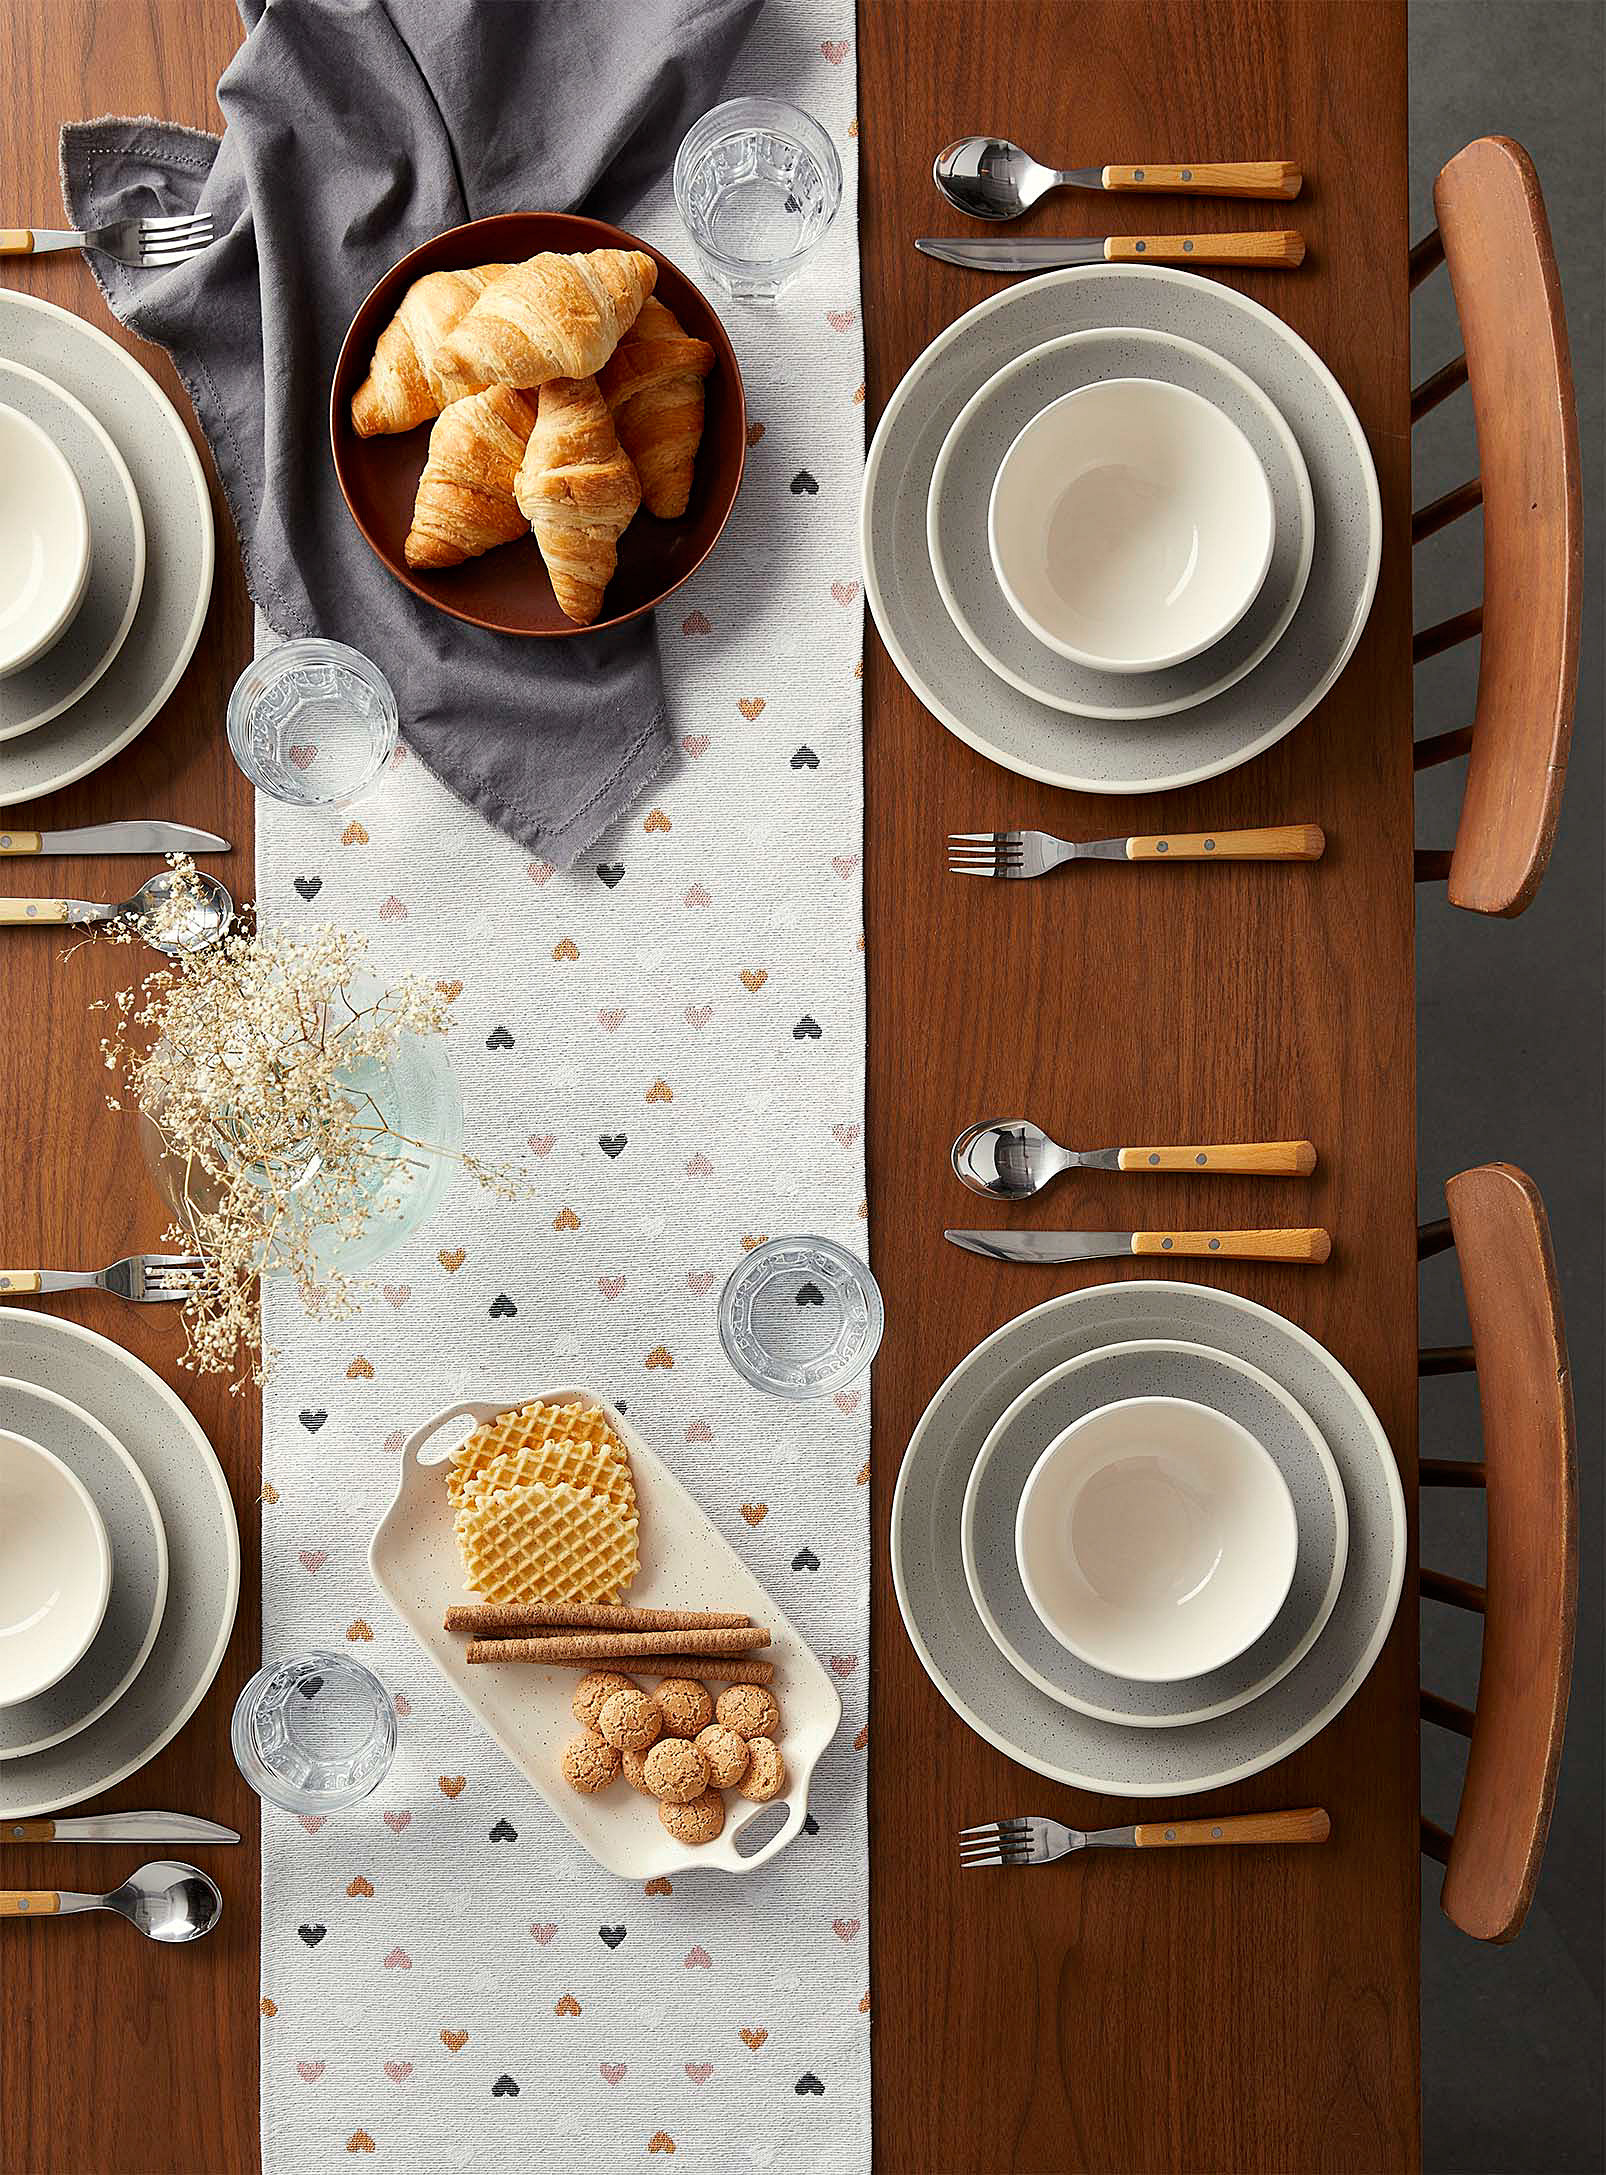 the table runner on a set table with a bowl of croissants and honeycomb and biscuits